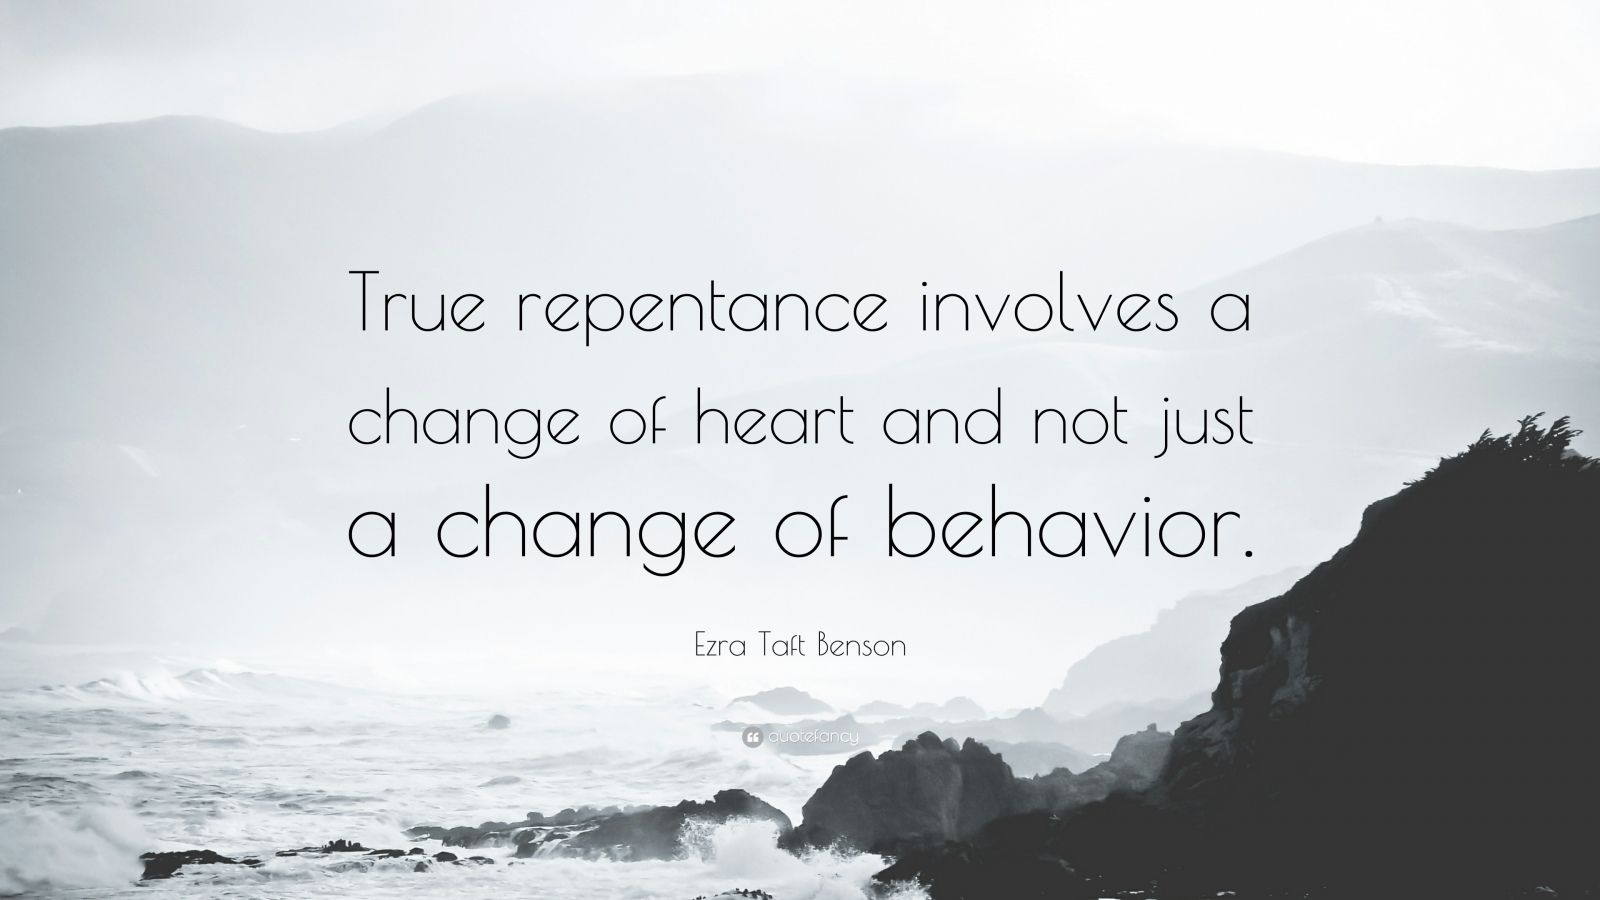 """Ezra Taft Benson Quote: """"True repentance involves a change of heart and not just a change of behavior."""""""